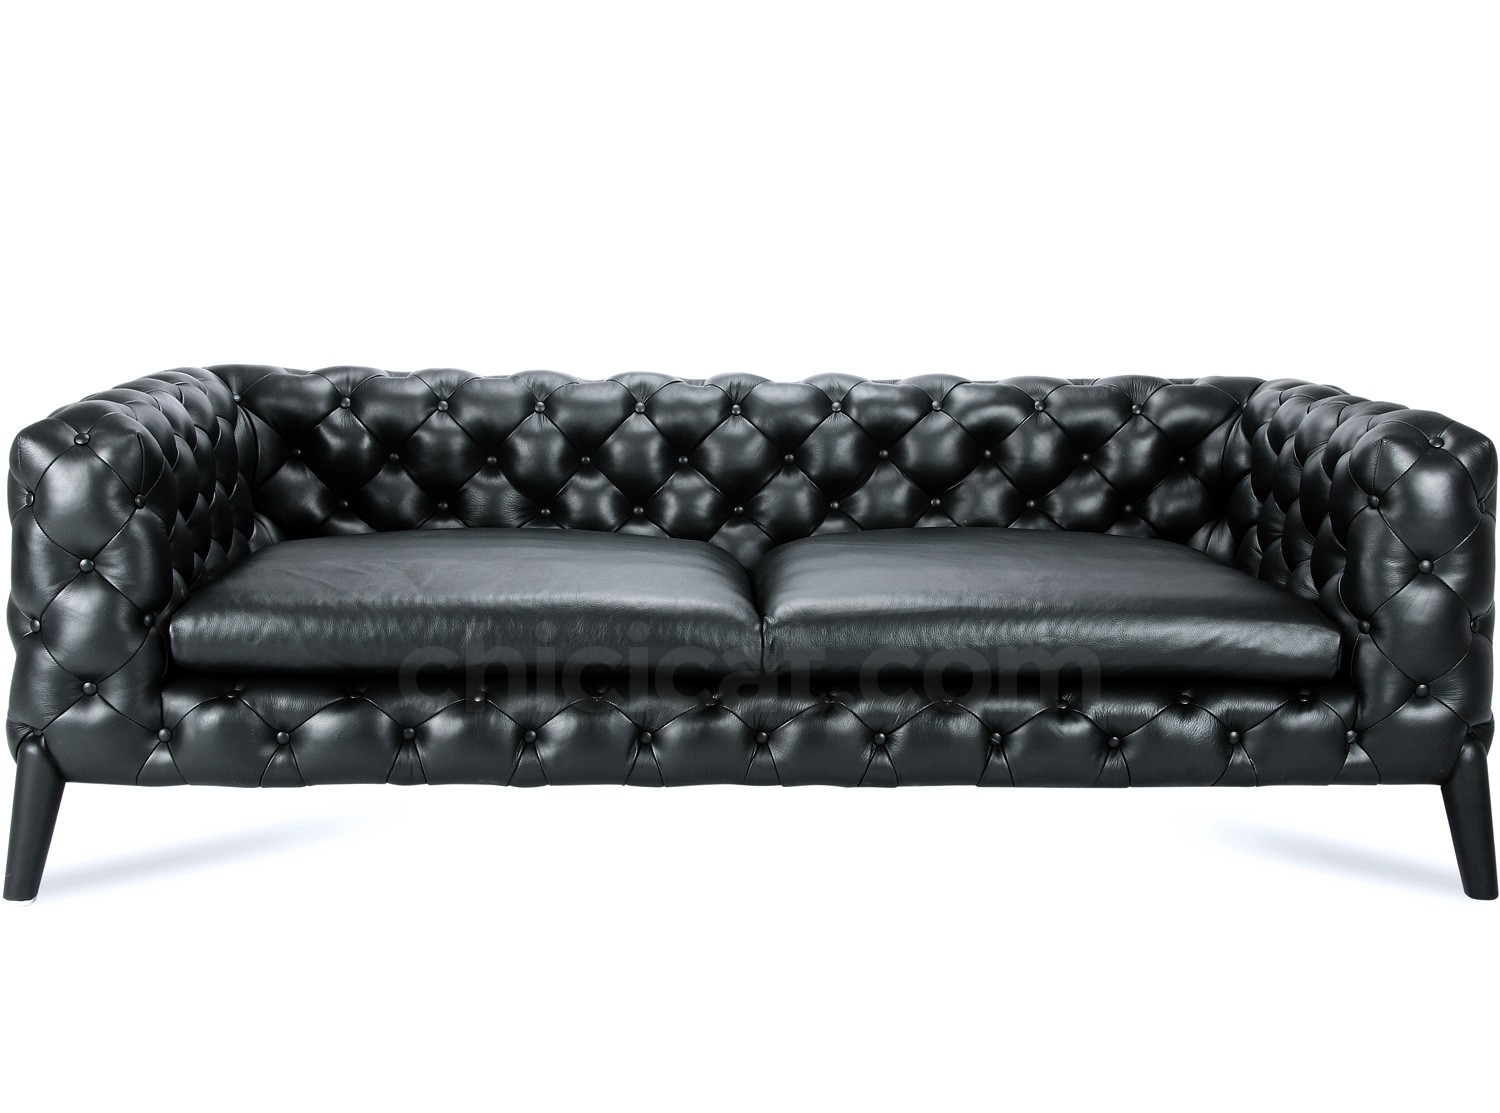 windsor chesterfield sofa 3 seater replica. Black Bedroom Furniture Sets. Home Design Ideas